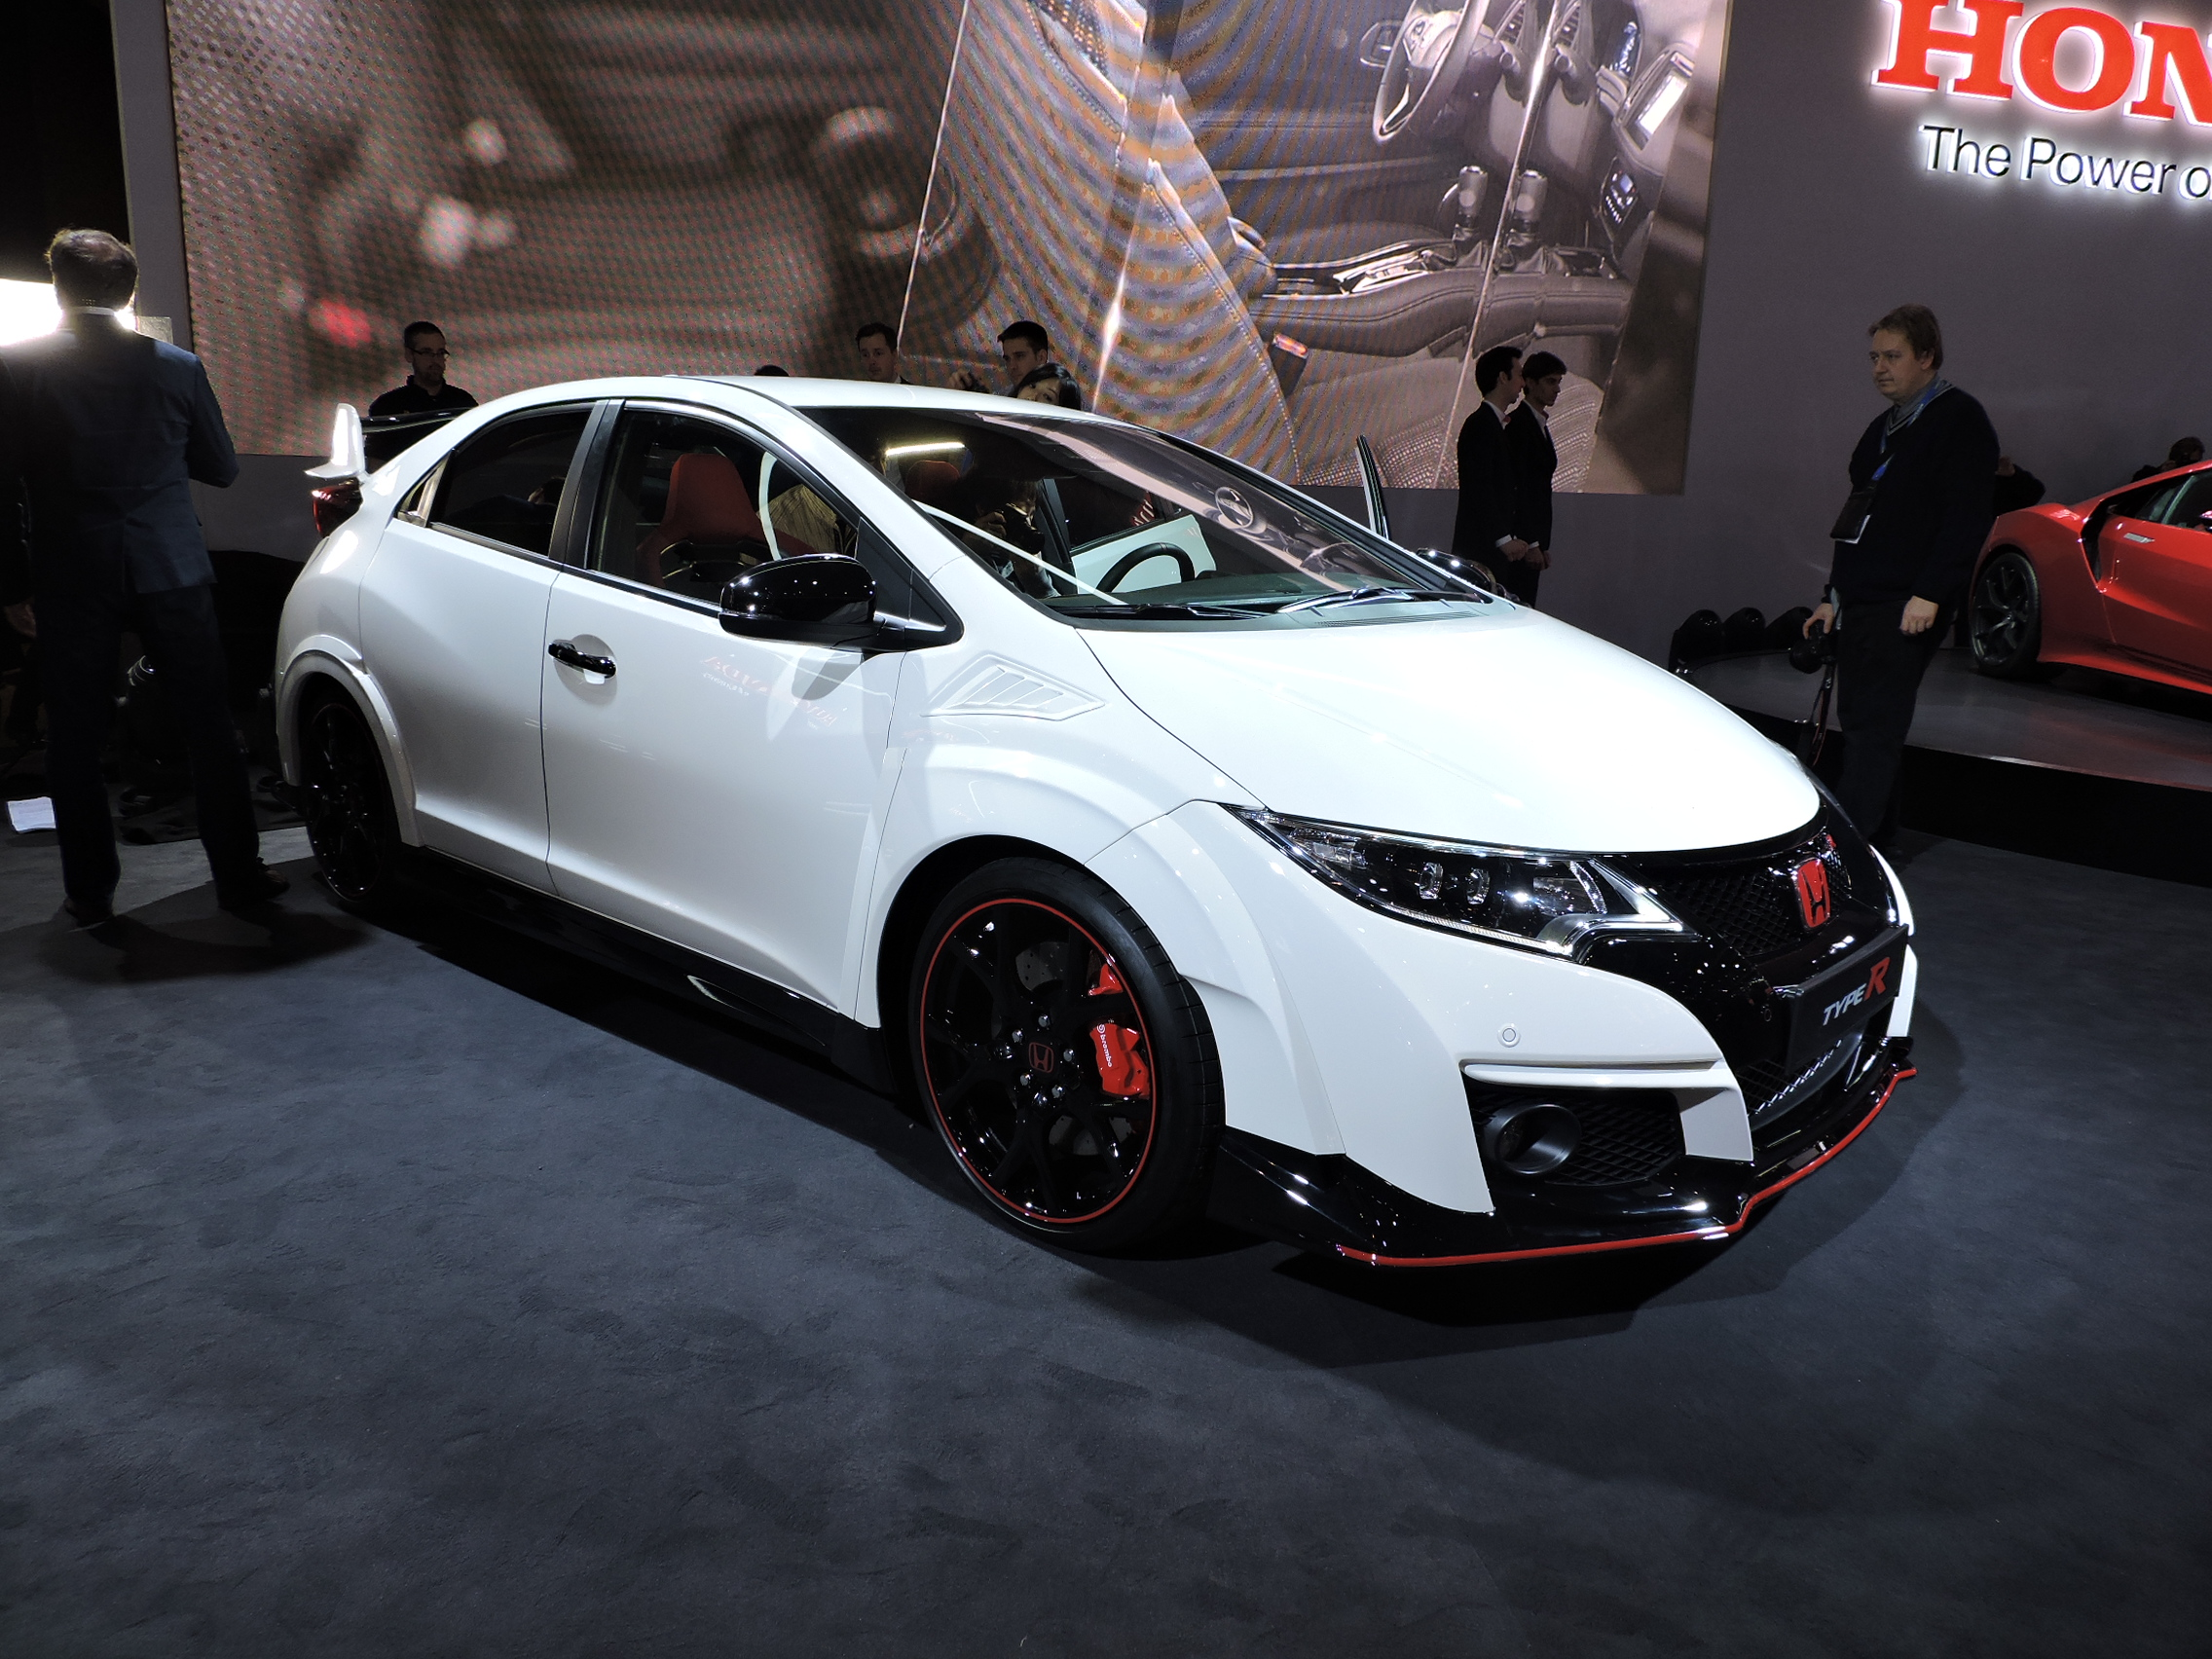 honda civic type r boasts insane performance news. Black Bedroom Furniture Sets. Home Design Ideas